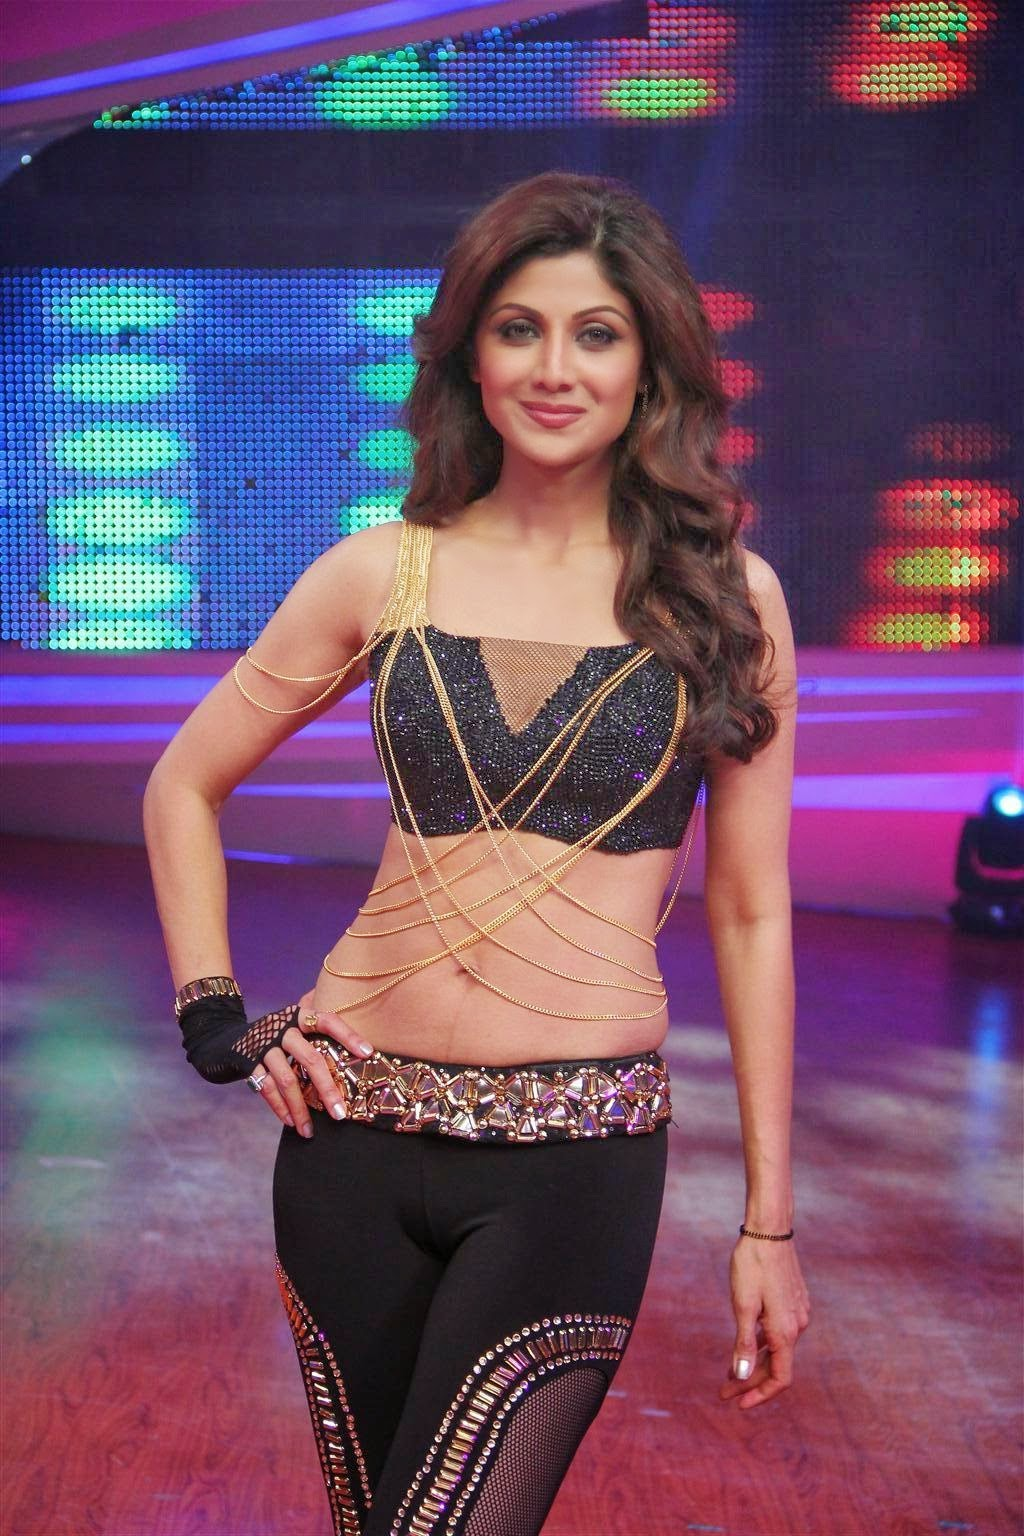 Shilpa Shetty cameltoe pics in tight yoga pants underwear cut visble